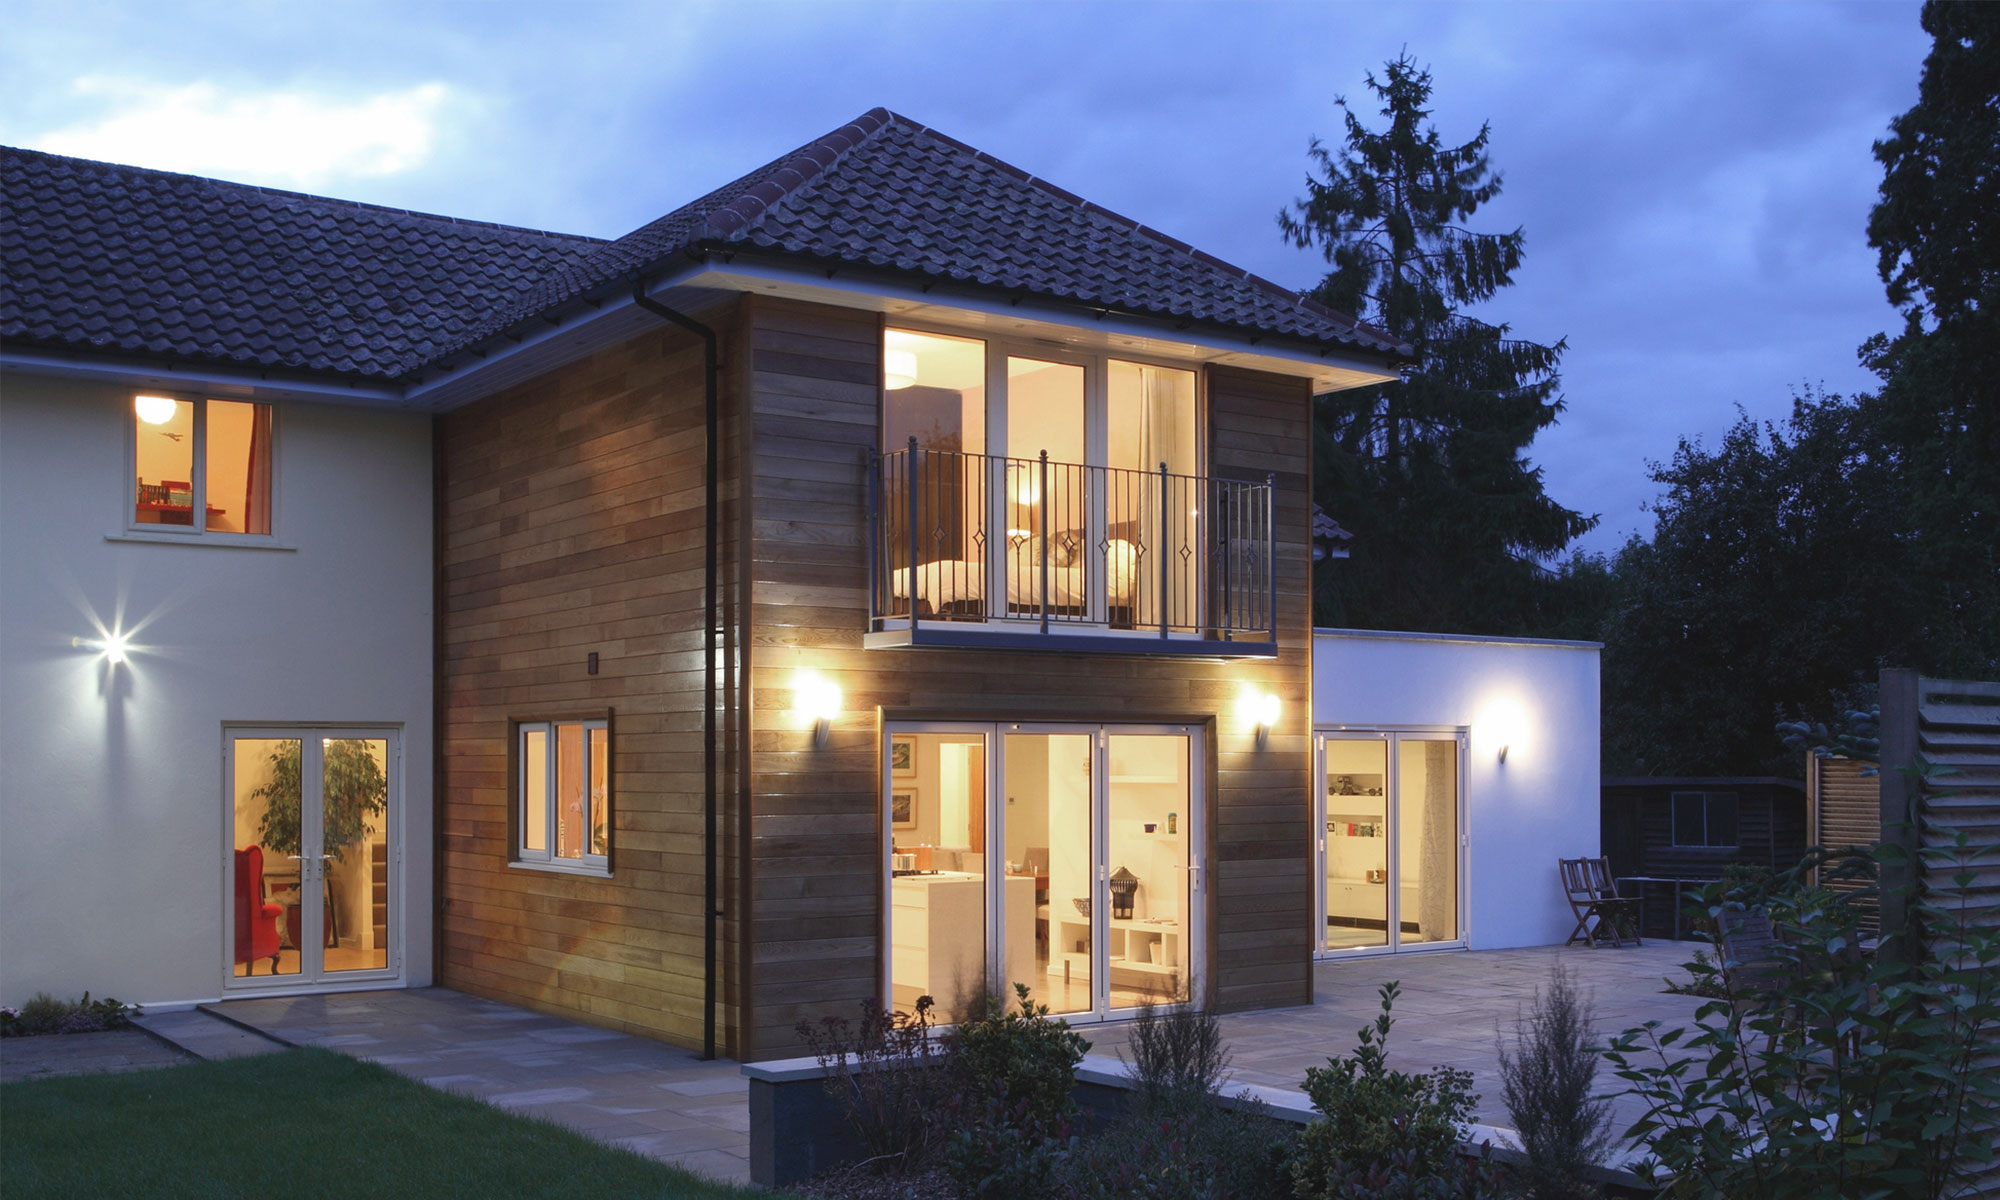 Outdoor lighting ideas to make your house safer and more stunning.